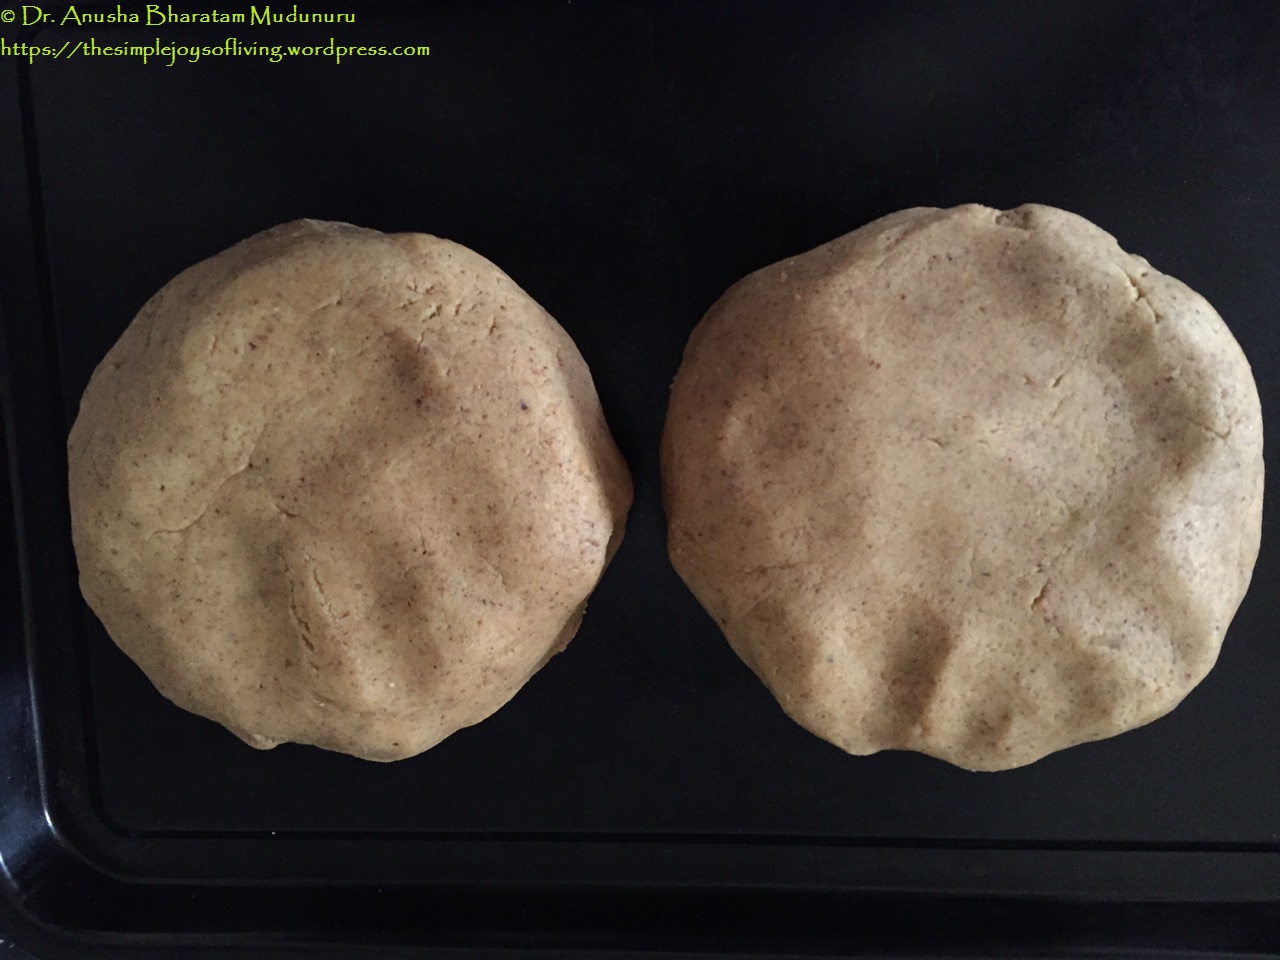 Lintzer Cookies - The Dough Divided into 2 Halves